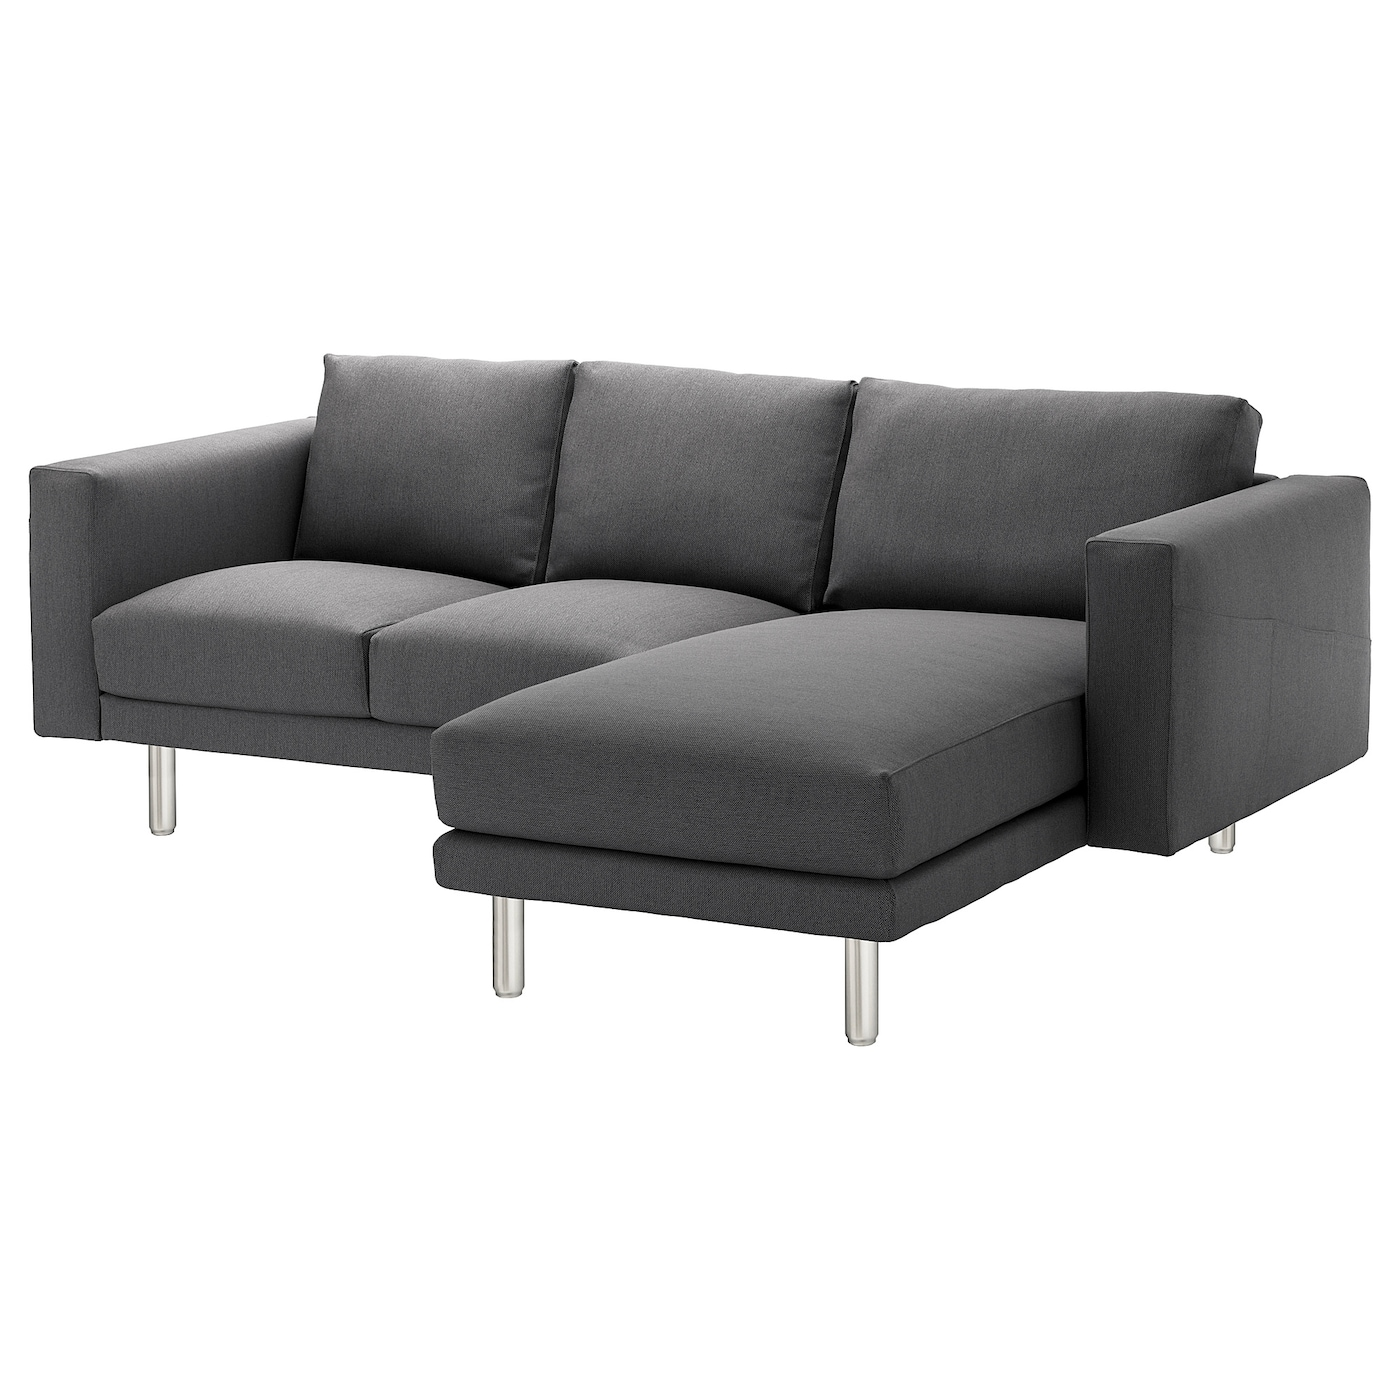 Norsborg 3 seat sofa with chaise longue finnsta dark grey for Sofa en l liquidation